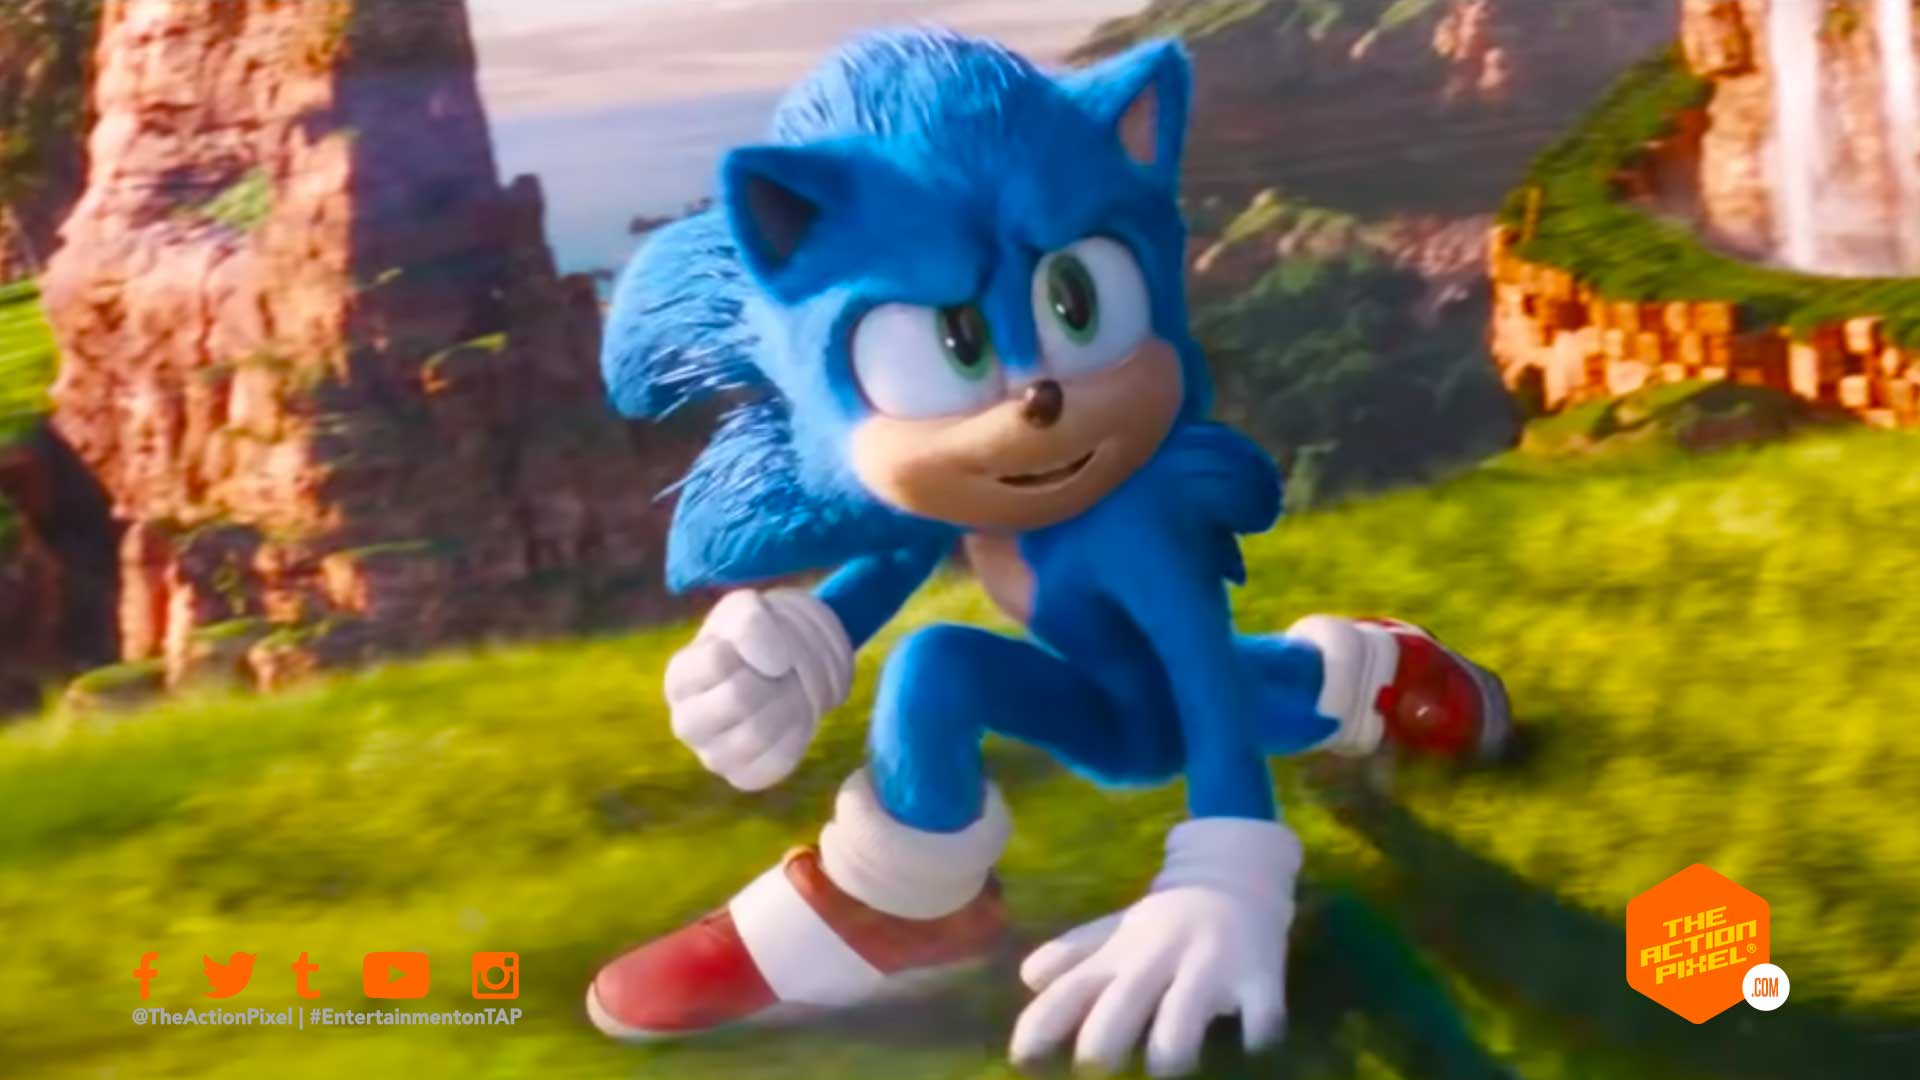 sonic the hedgehog, sonic the hedgehog sequel, paramount, paramount pictures, jeff fowler, the action pixel, entertainment on tap,featured,